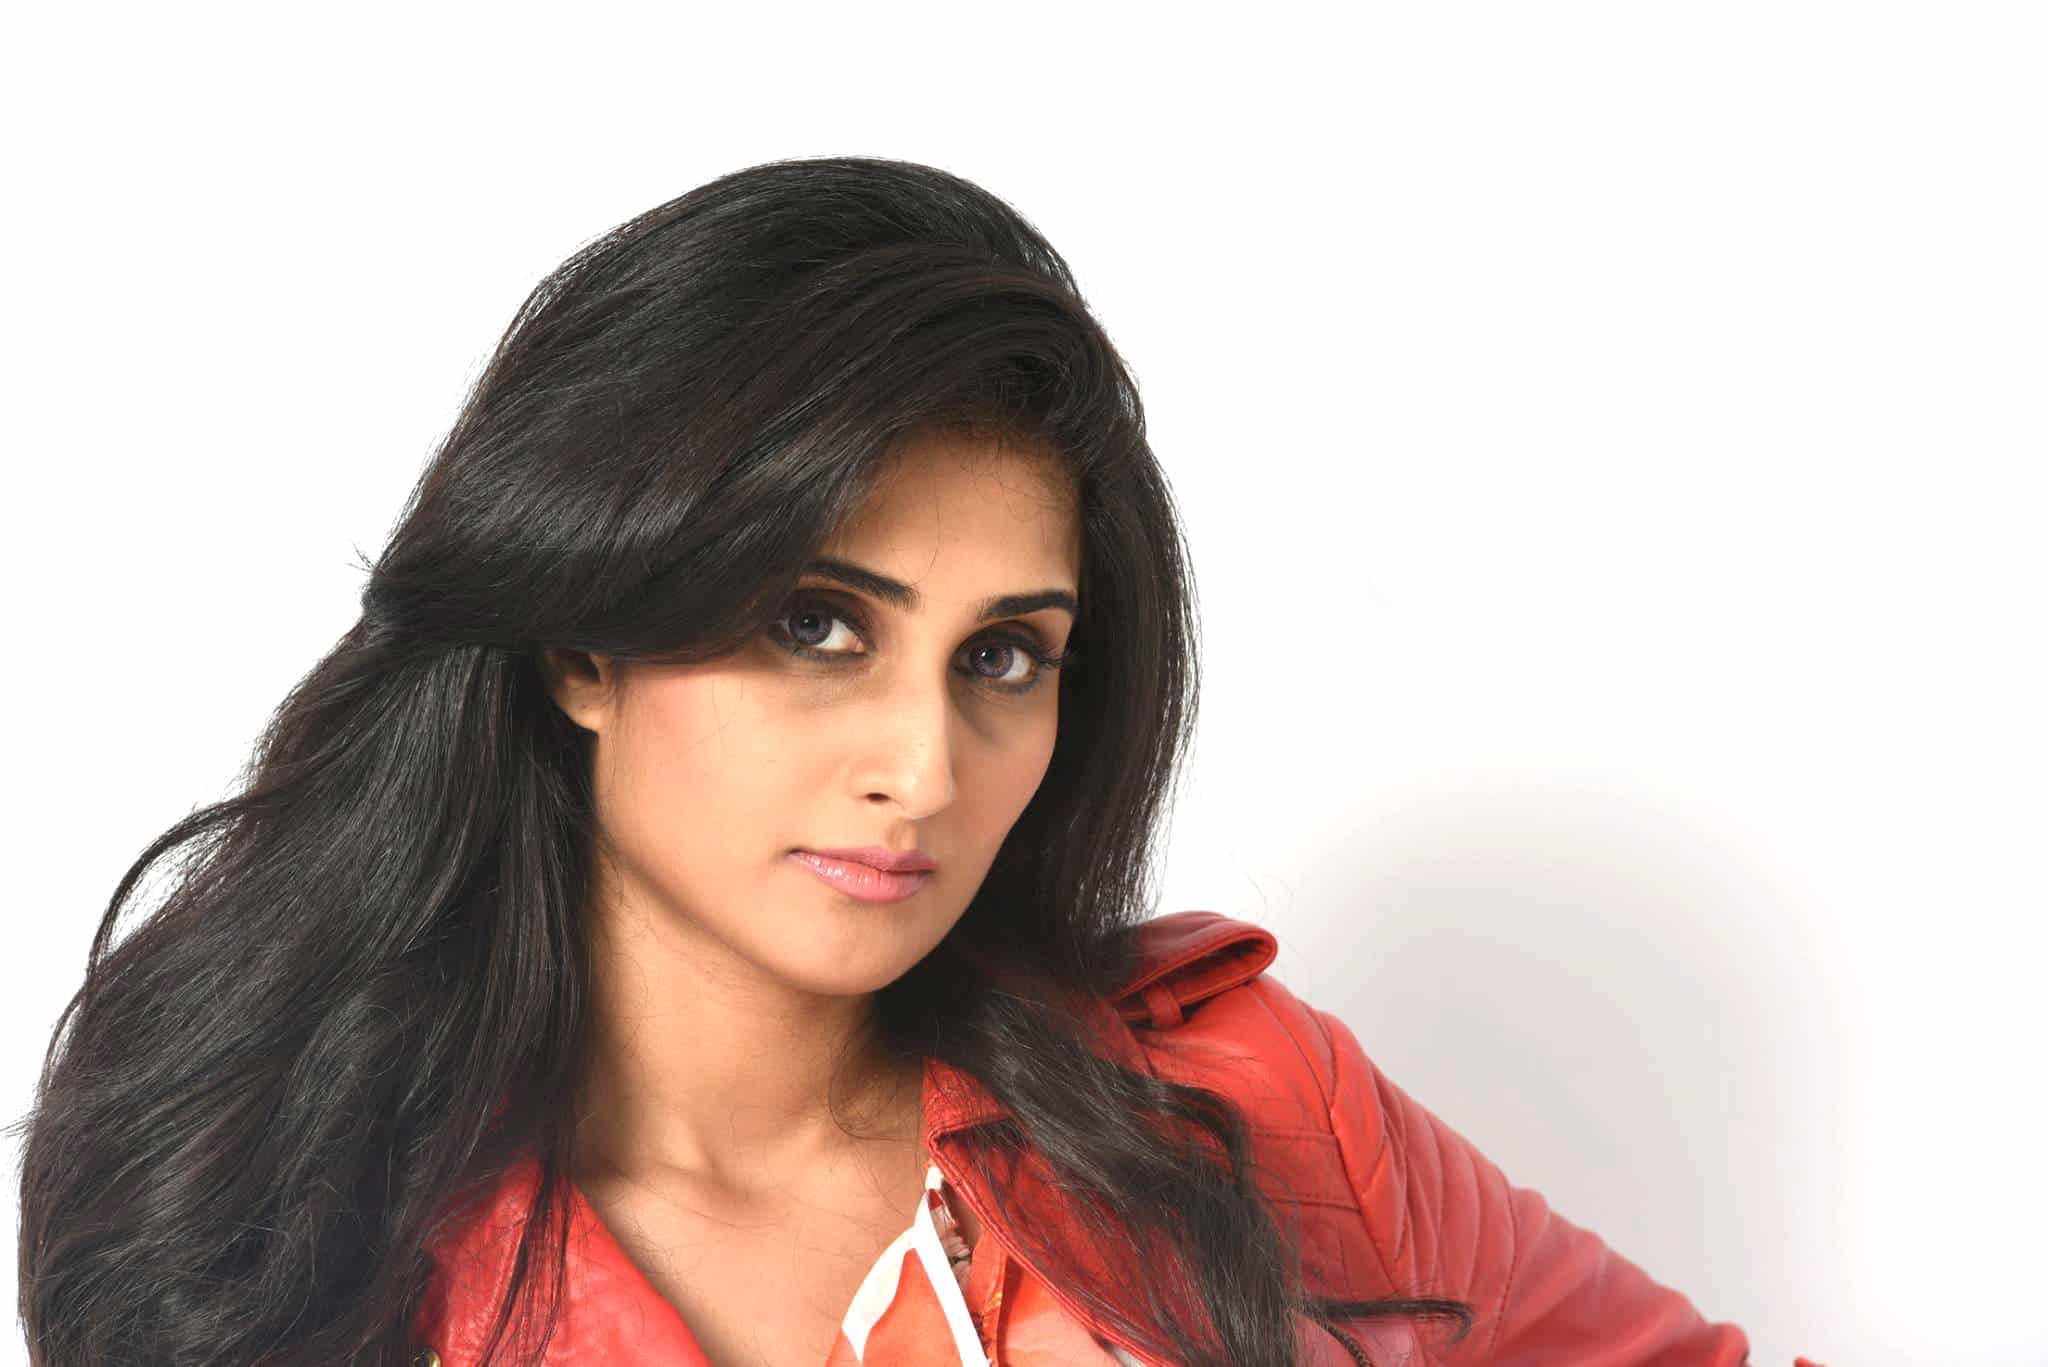 shamili wikipediashamili wikipedia, shamili and siddharth movie, shamili photos, shamili wedding, shamili images, shamili facebook, shamili hot, shamili agarwal, shamili wedding photos, shamili latest pics, shamili latest photos, shamili family photos, shamili ragalahari, shamili singer, shamili navel, shamili baby images, shamili actress, shamil biography, shamili baby